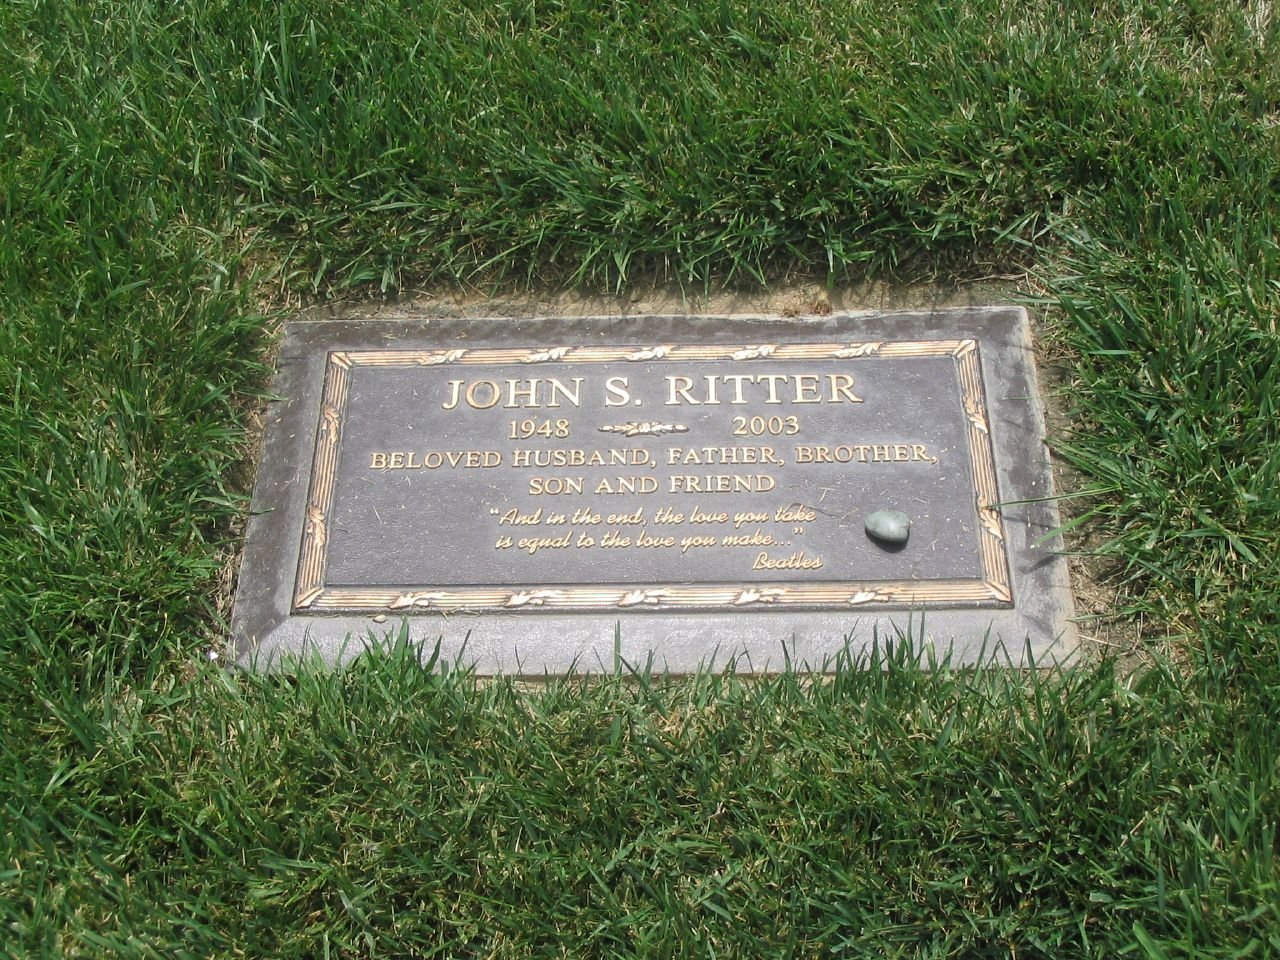 John Ritter's gravestone | Source: Wikimedia Commons